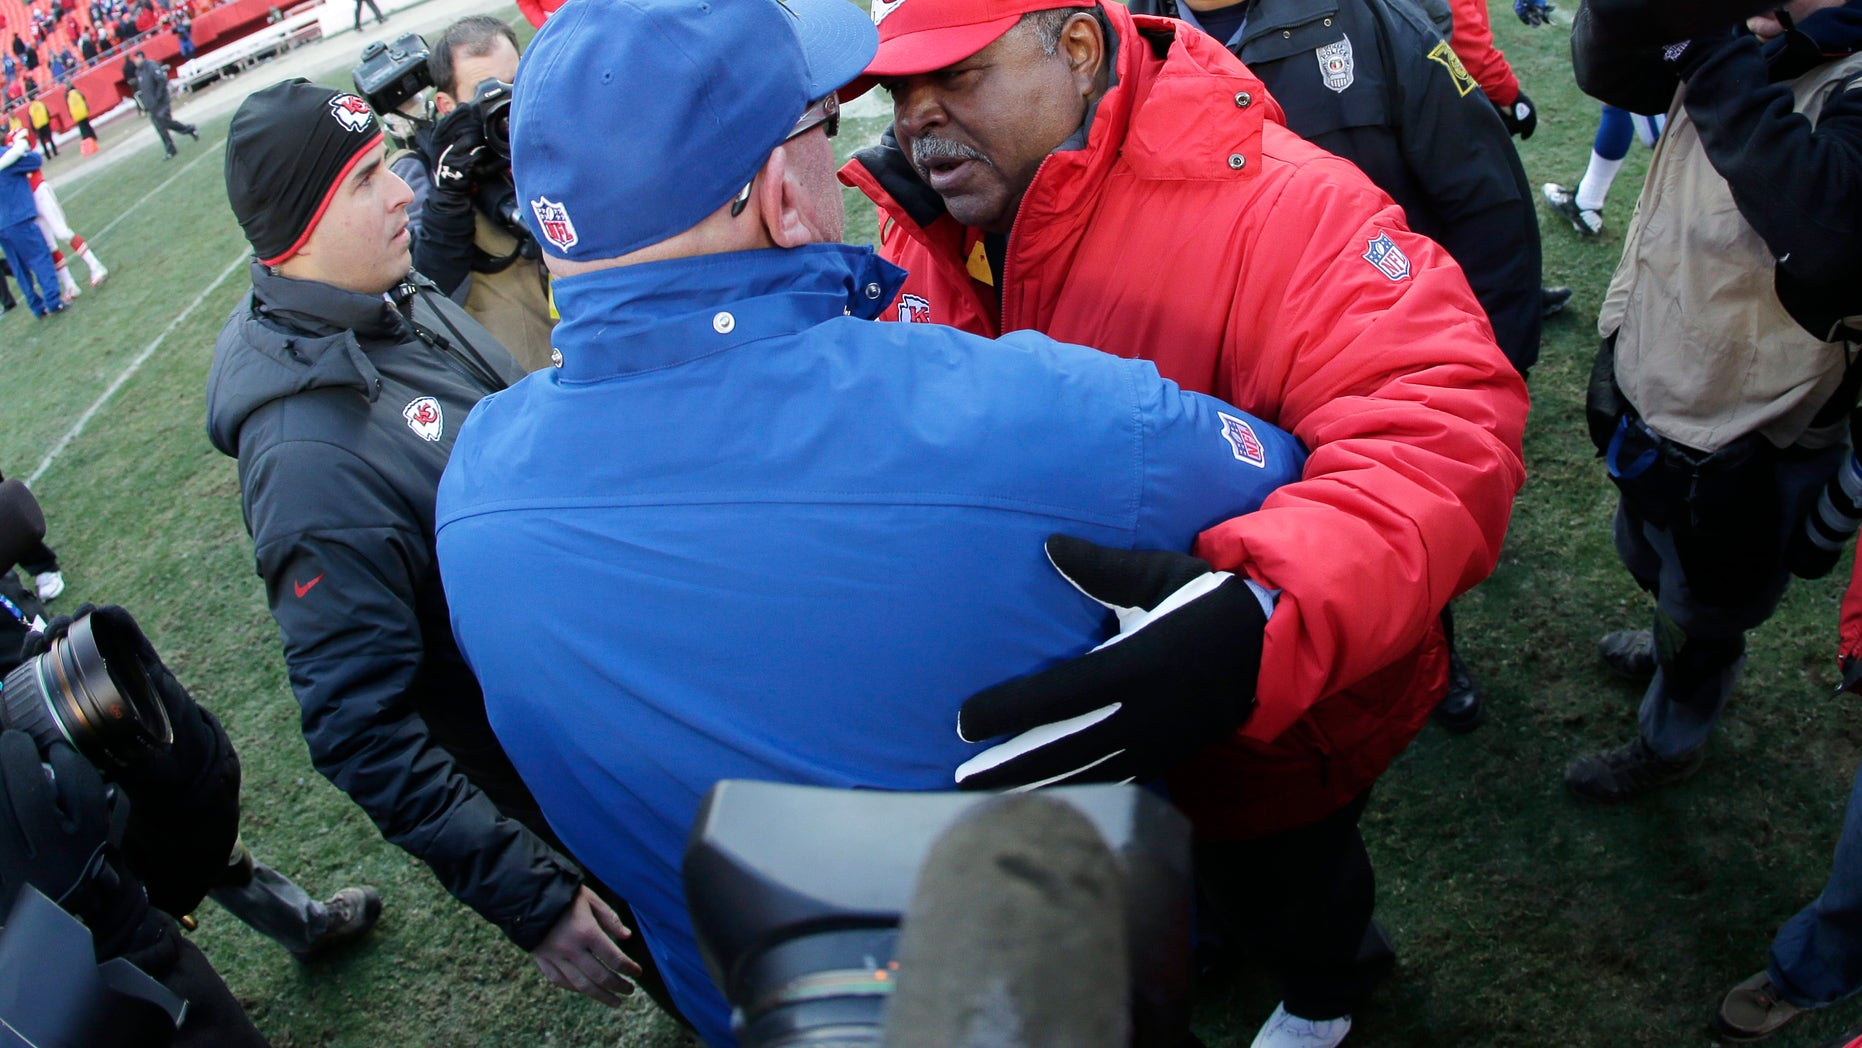 Indianapolis Colts interim coach Bruce Arians, left, talks with Kansas City Chiefs coach Romeo Crennel after an NFL football game Sunday, Dec. 23, 2012, in Kansas City, Mo. The Colts won 20-13. (AP Photo/Charlie Riedel)